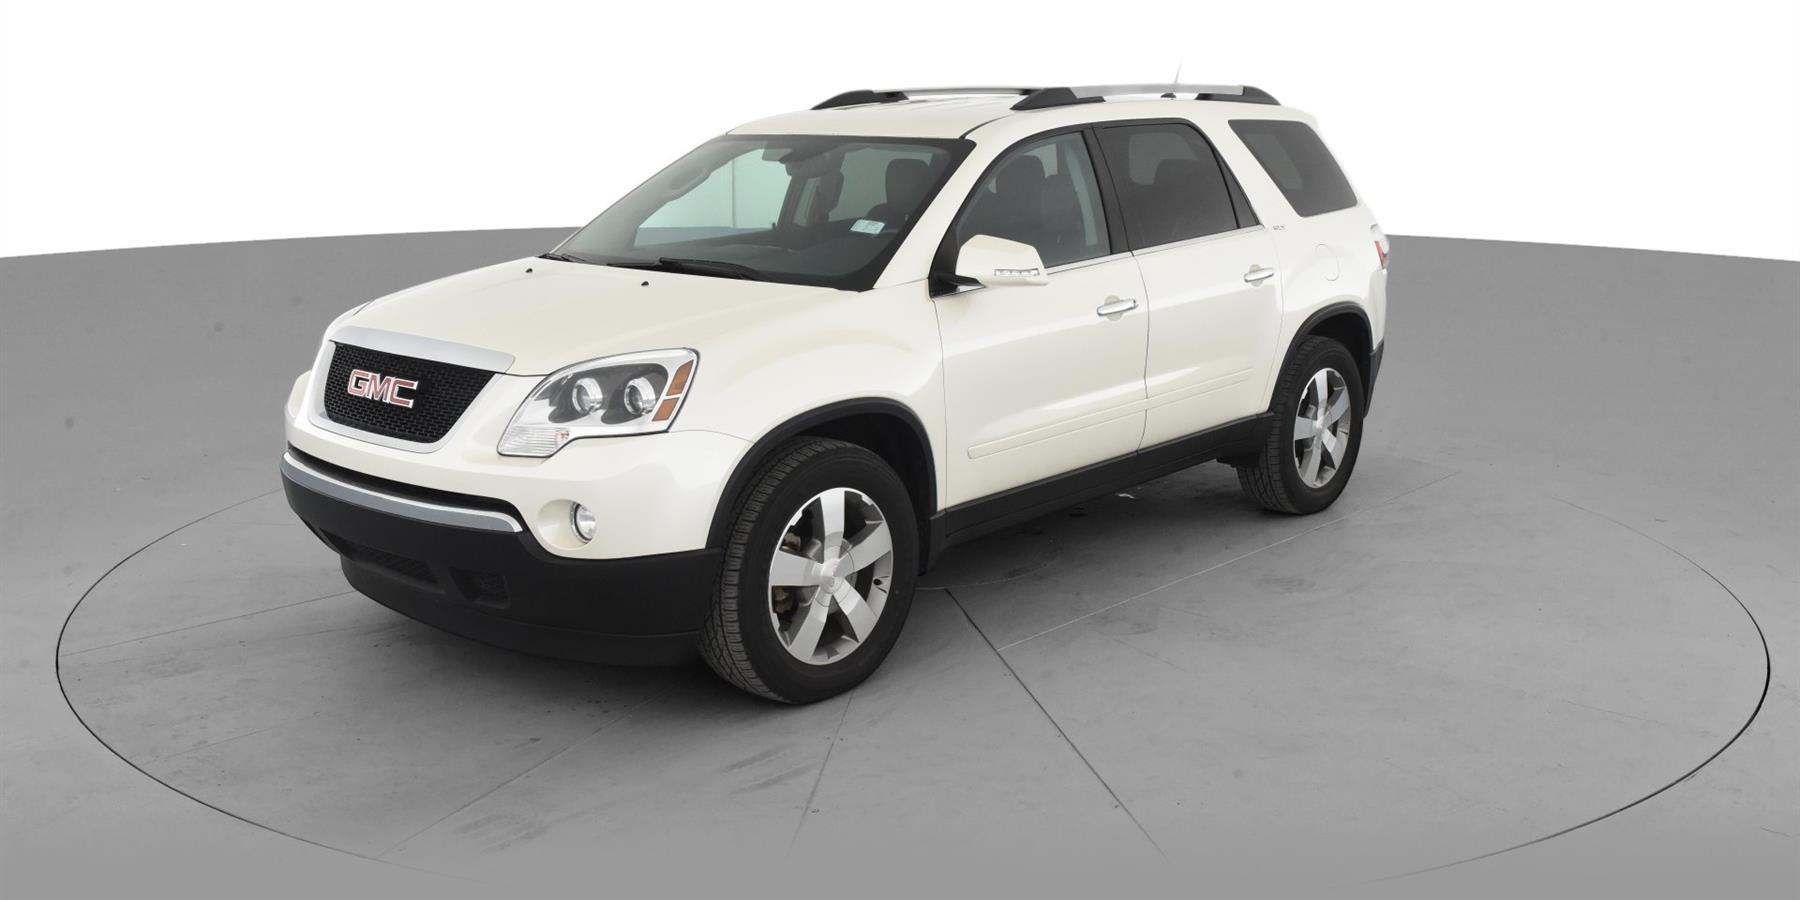 2012 Gmc Acadia Slt Sport Utility 4d For Sale Carvana